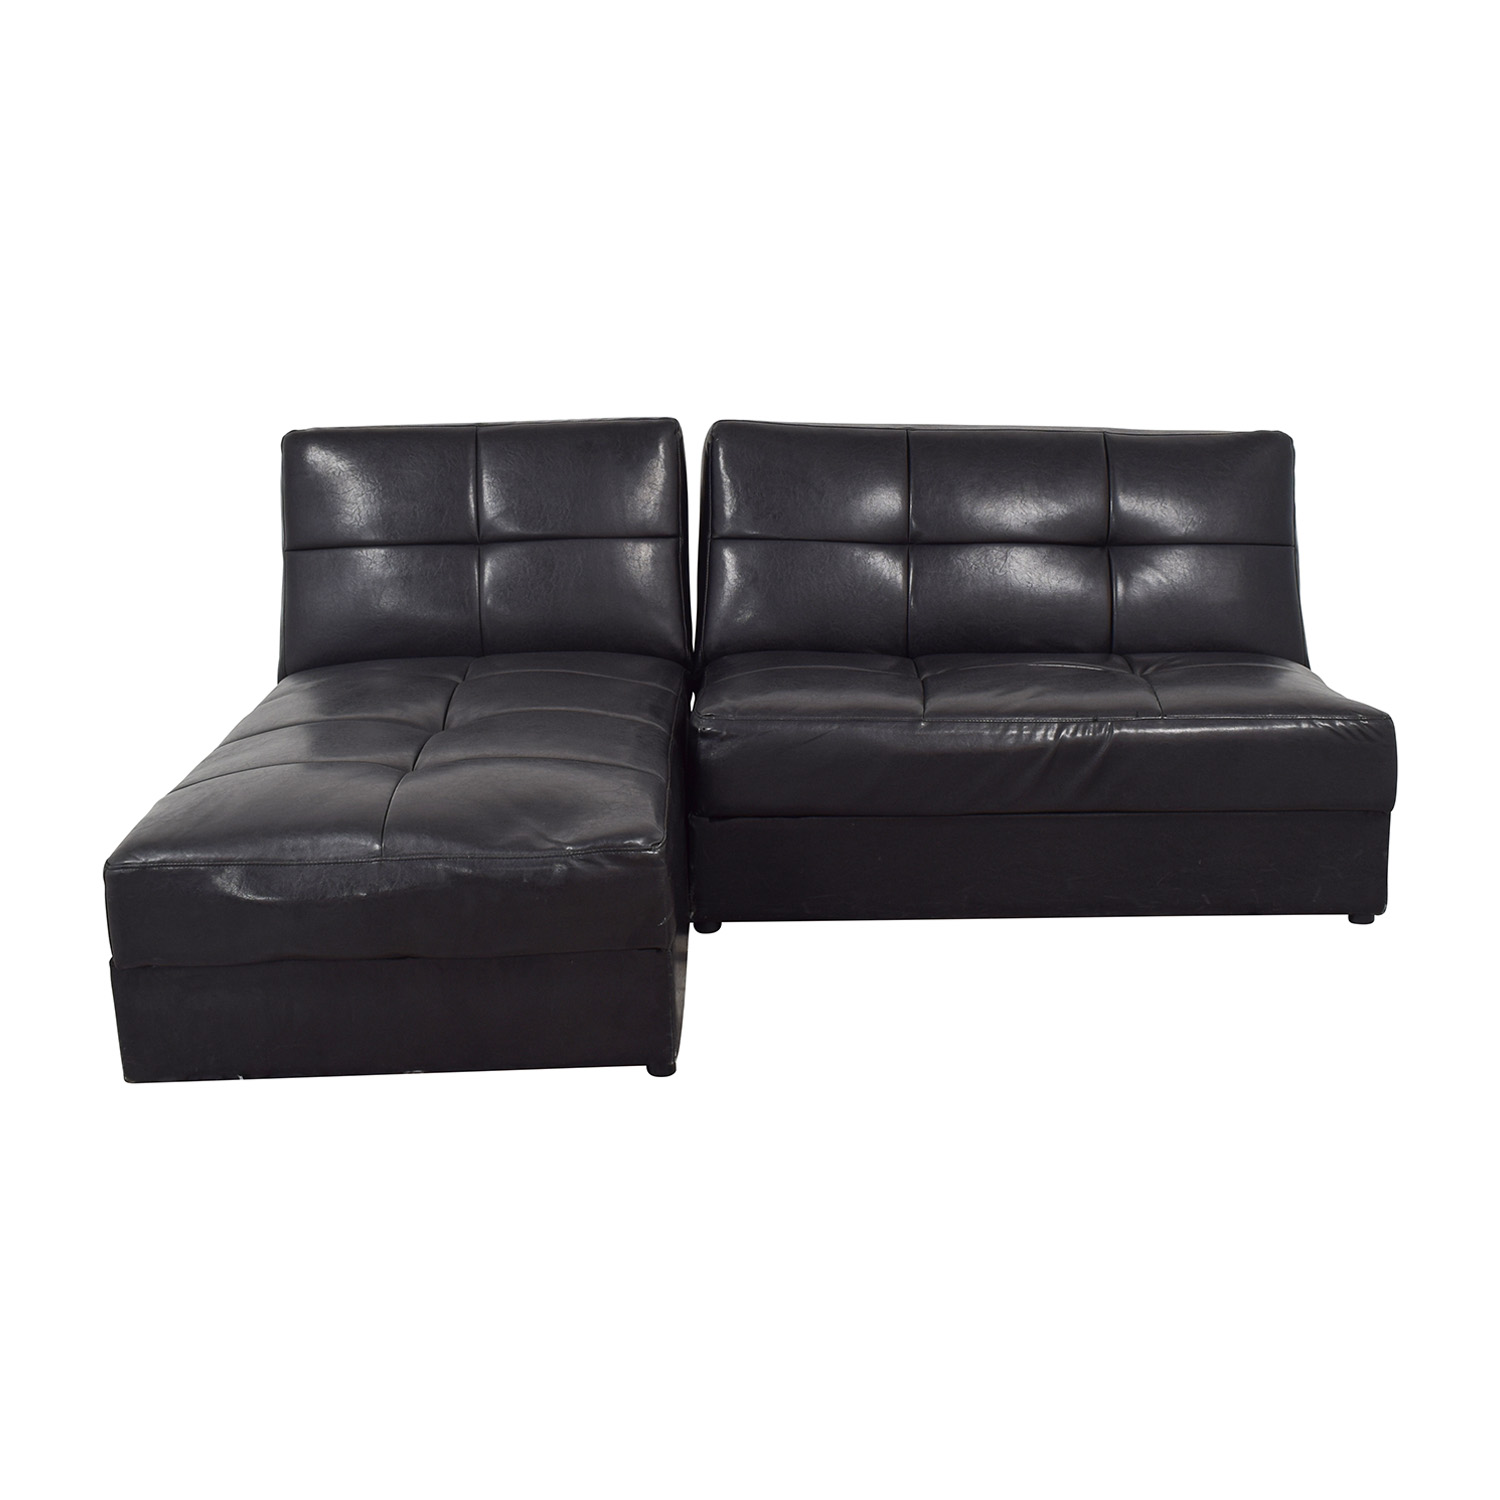 Leather Sleeper Sectional with Storage Sectionals